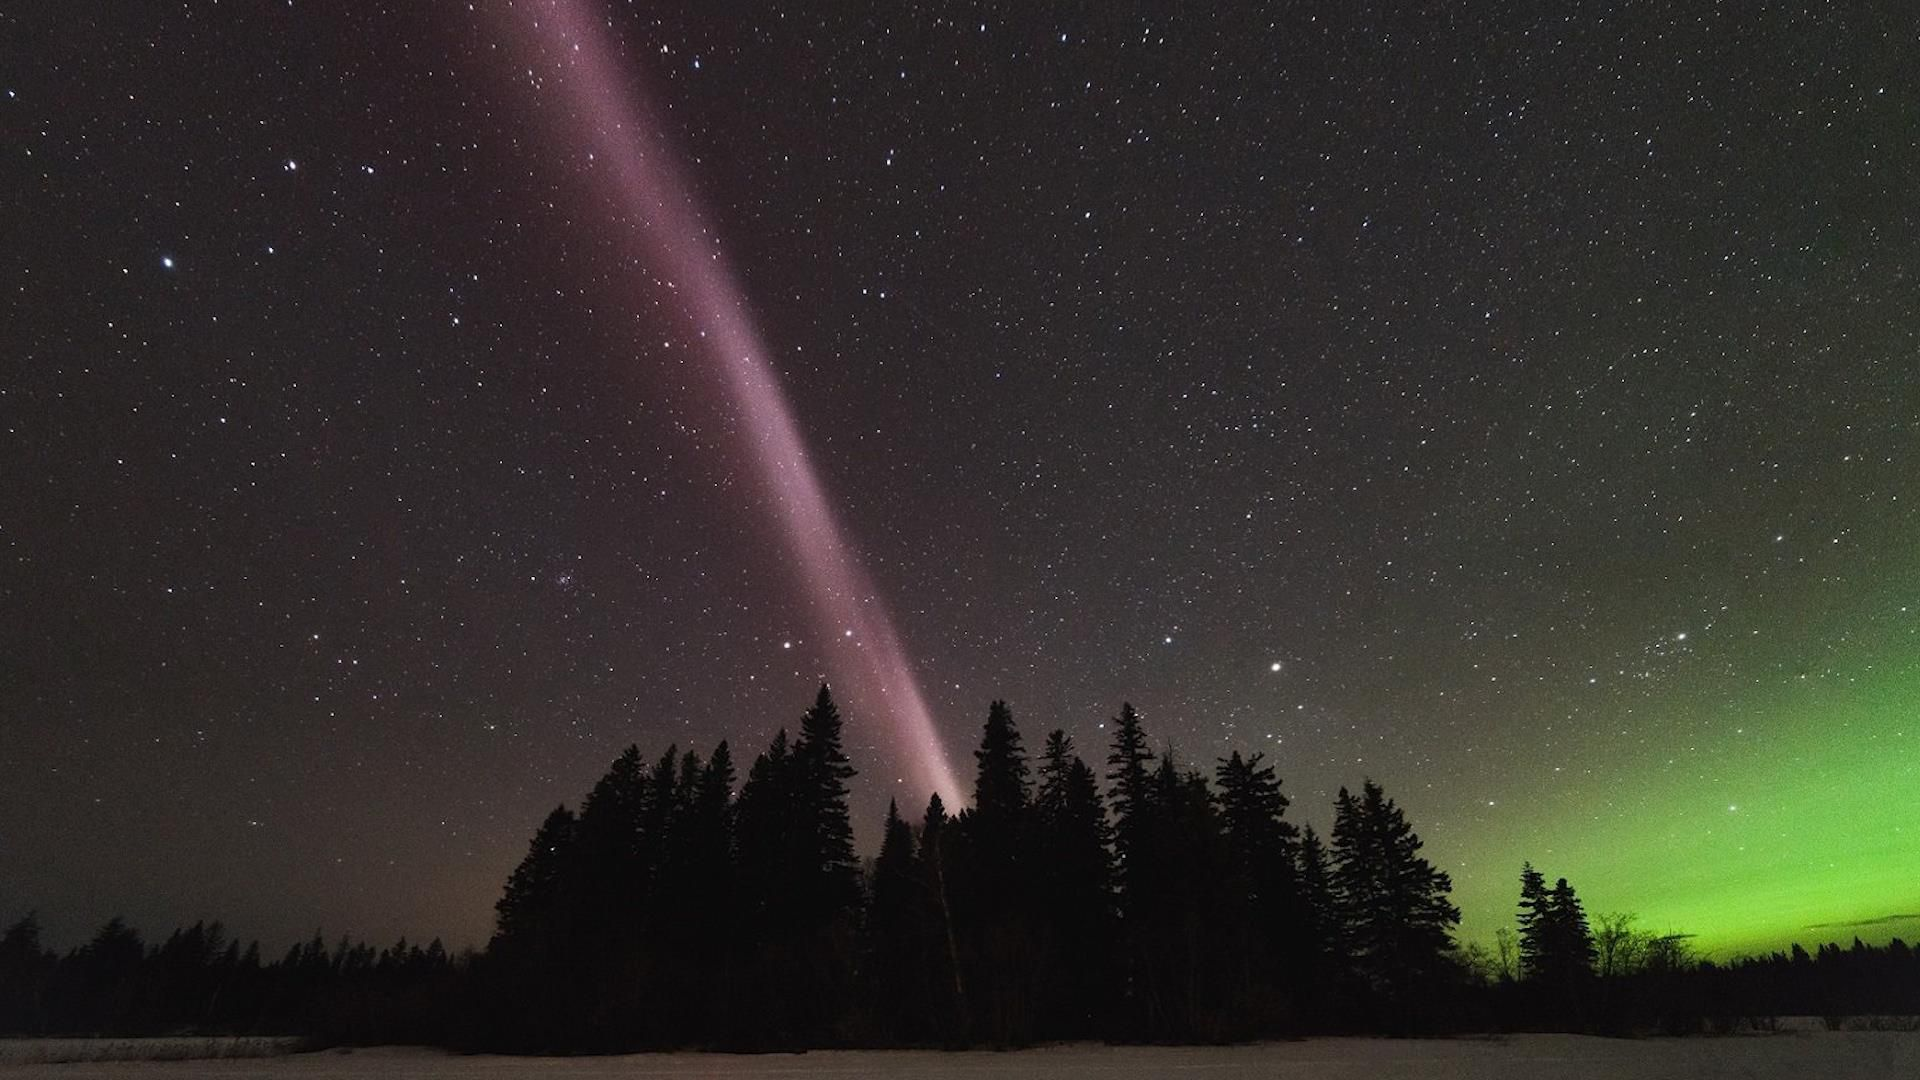 In this image, STEVE is a glowing pink streak across the dark starry purple sky. There are a row of black pine trees.